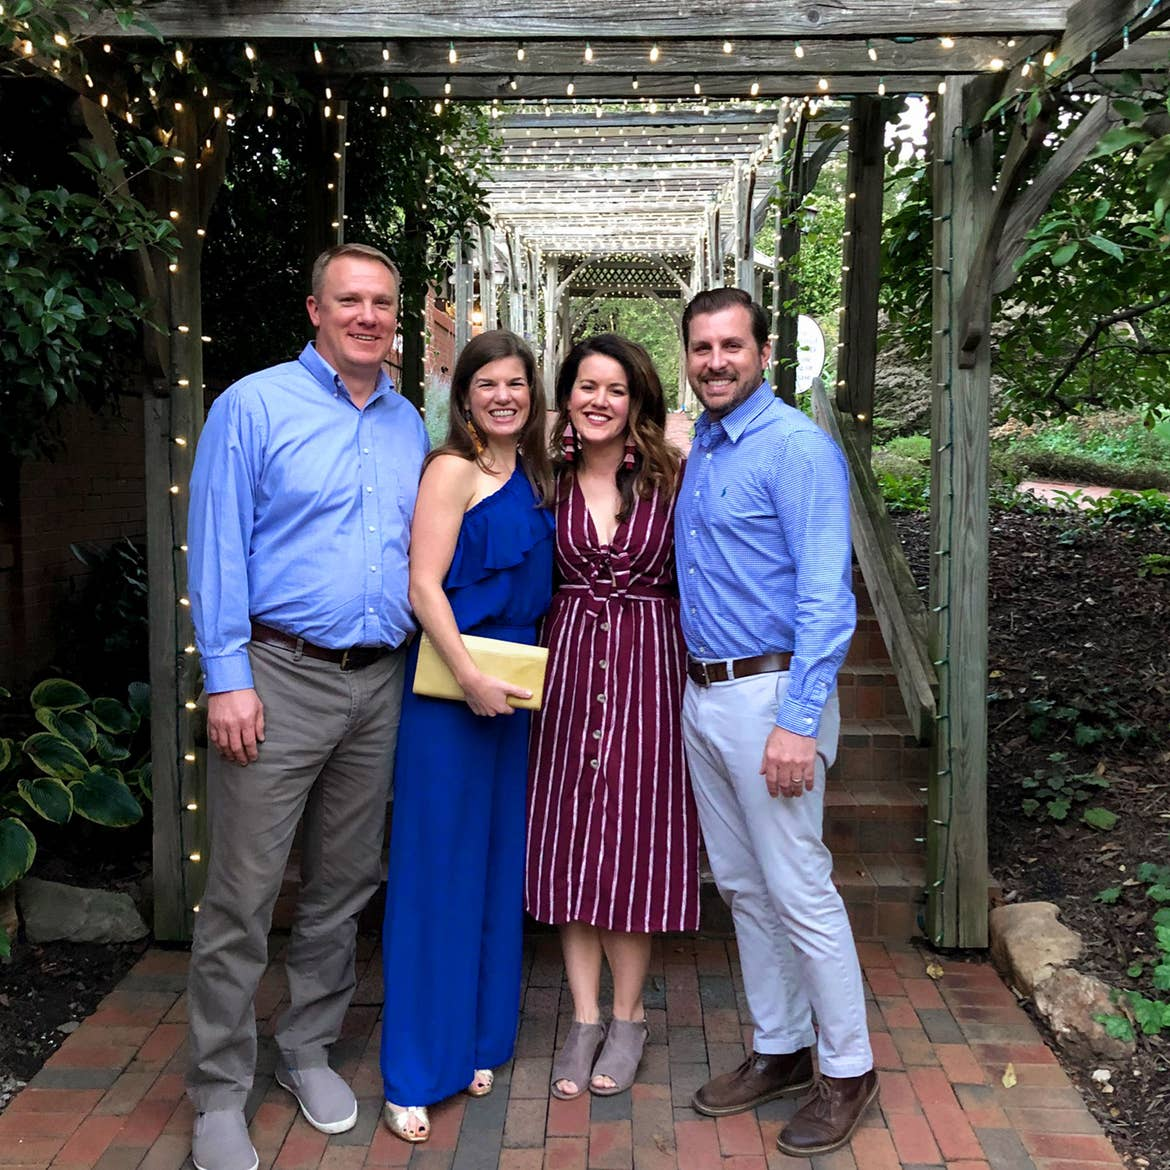 Author, Jenn C. Harmon (middle-right) and husband (right) stand with friends under the trellis of the gardens at the Biltmore Estate property near Antler Village Hall.